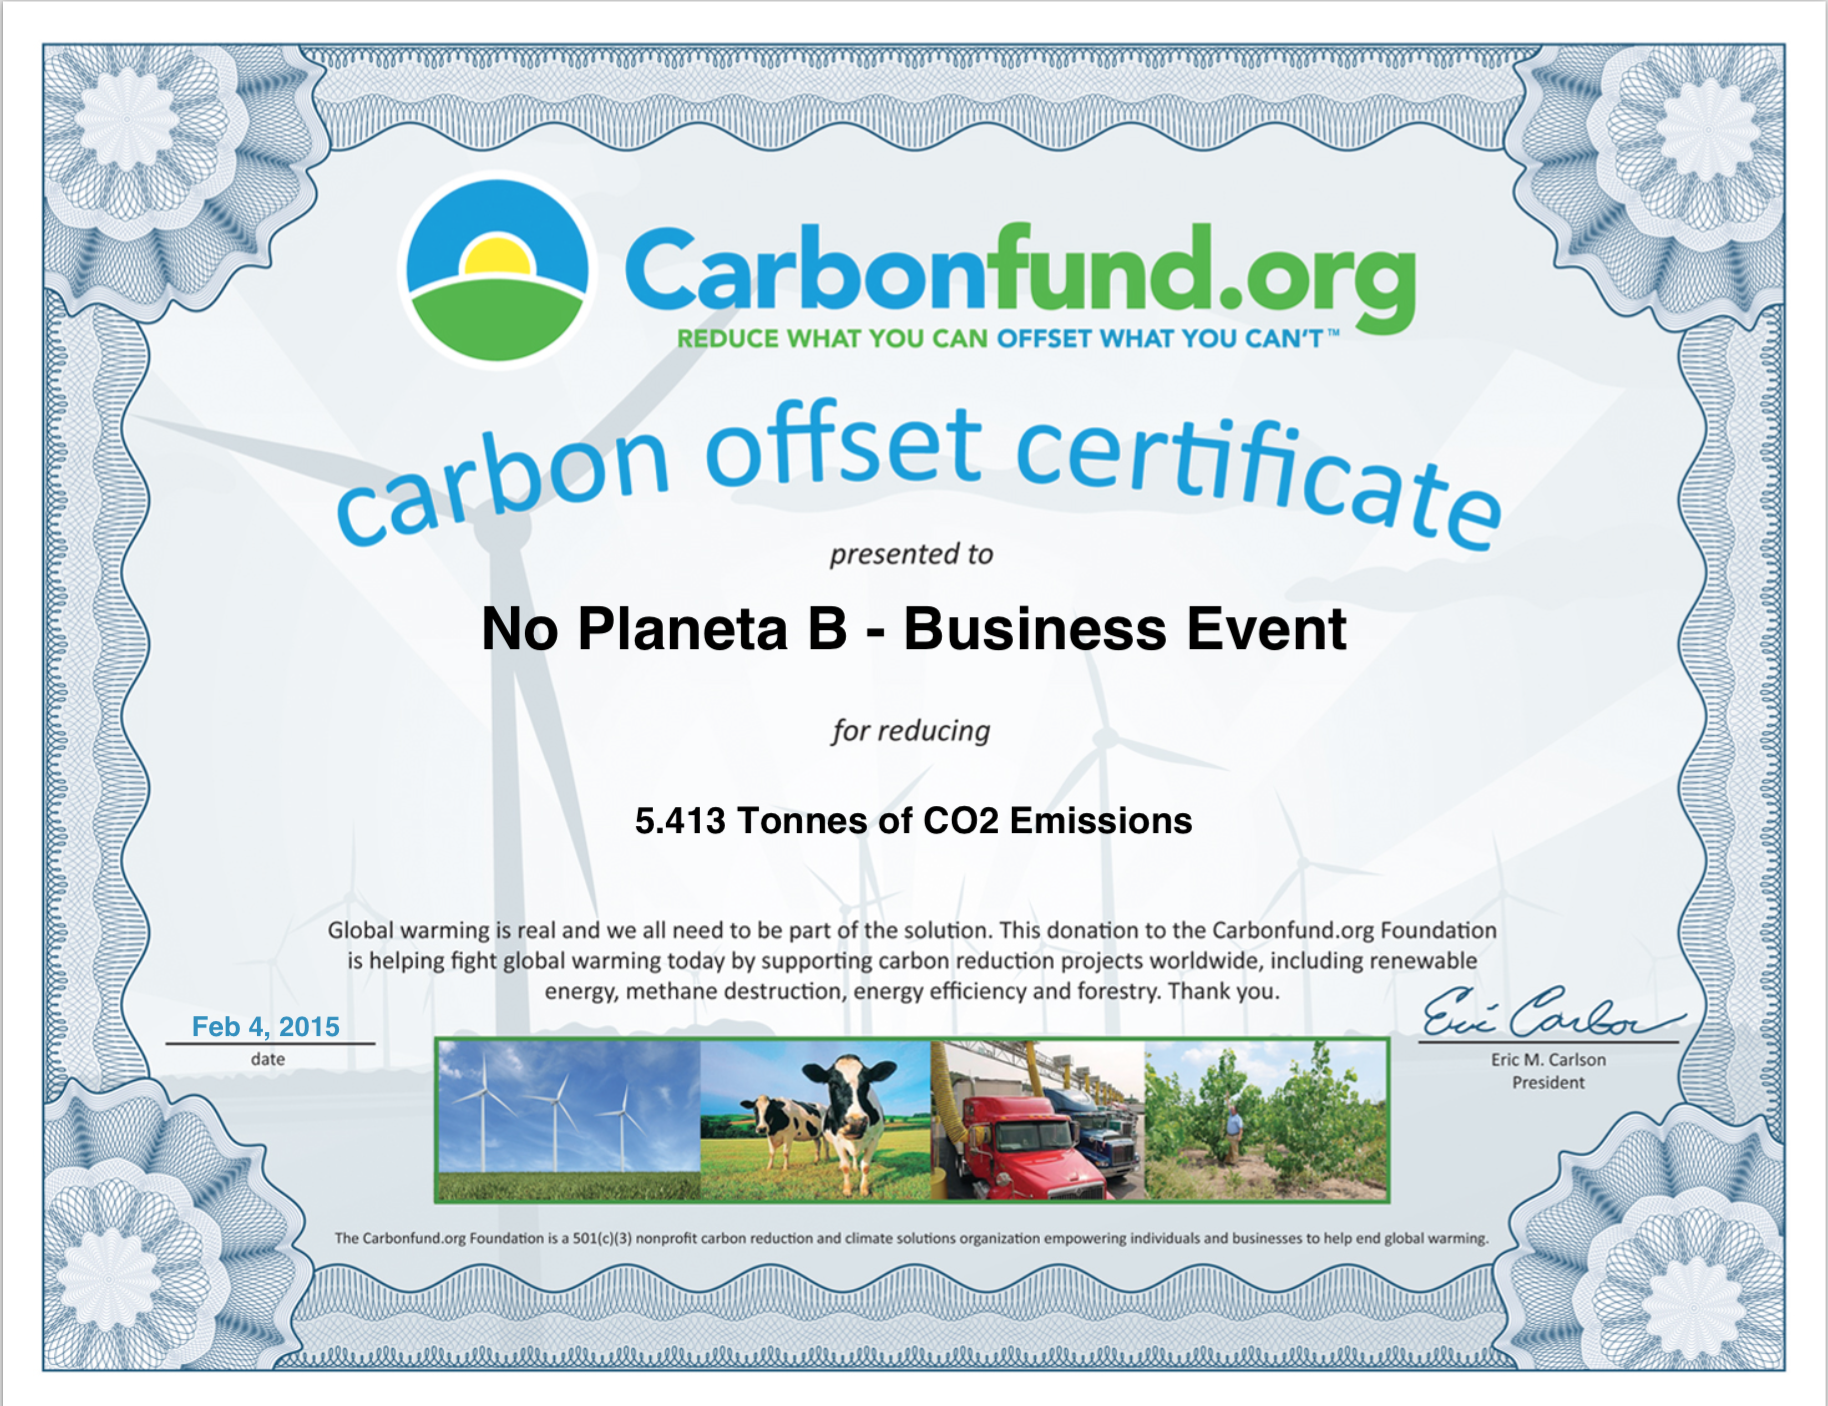 UCLIMATICA offset certificate